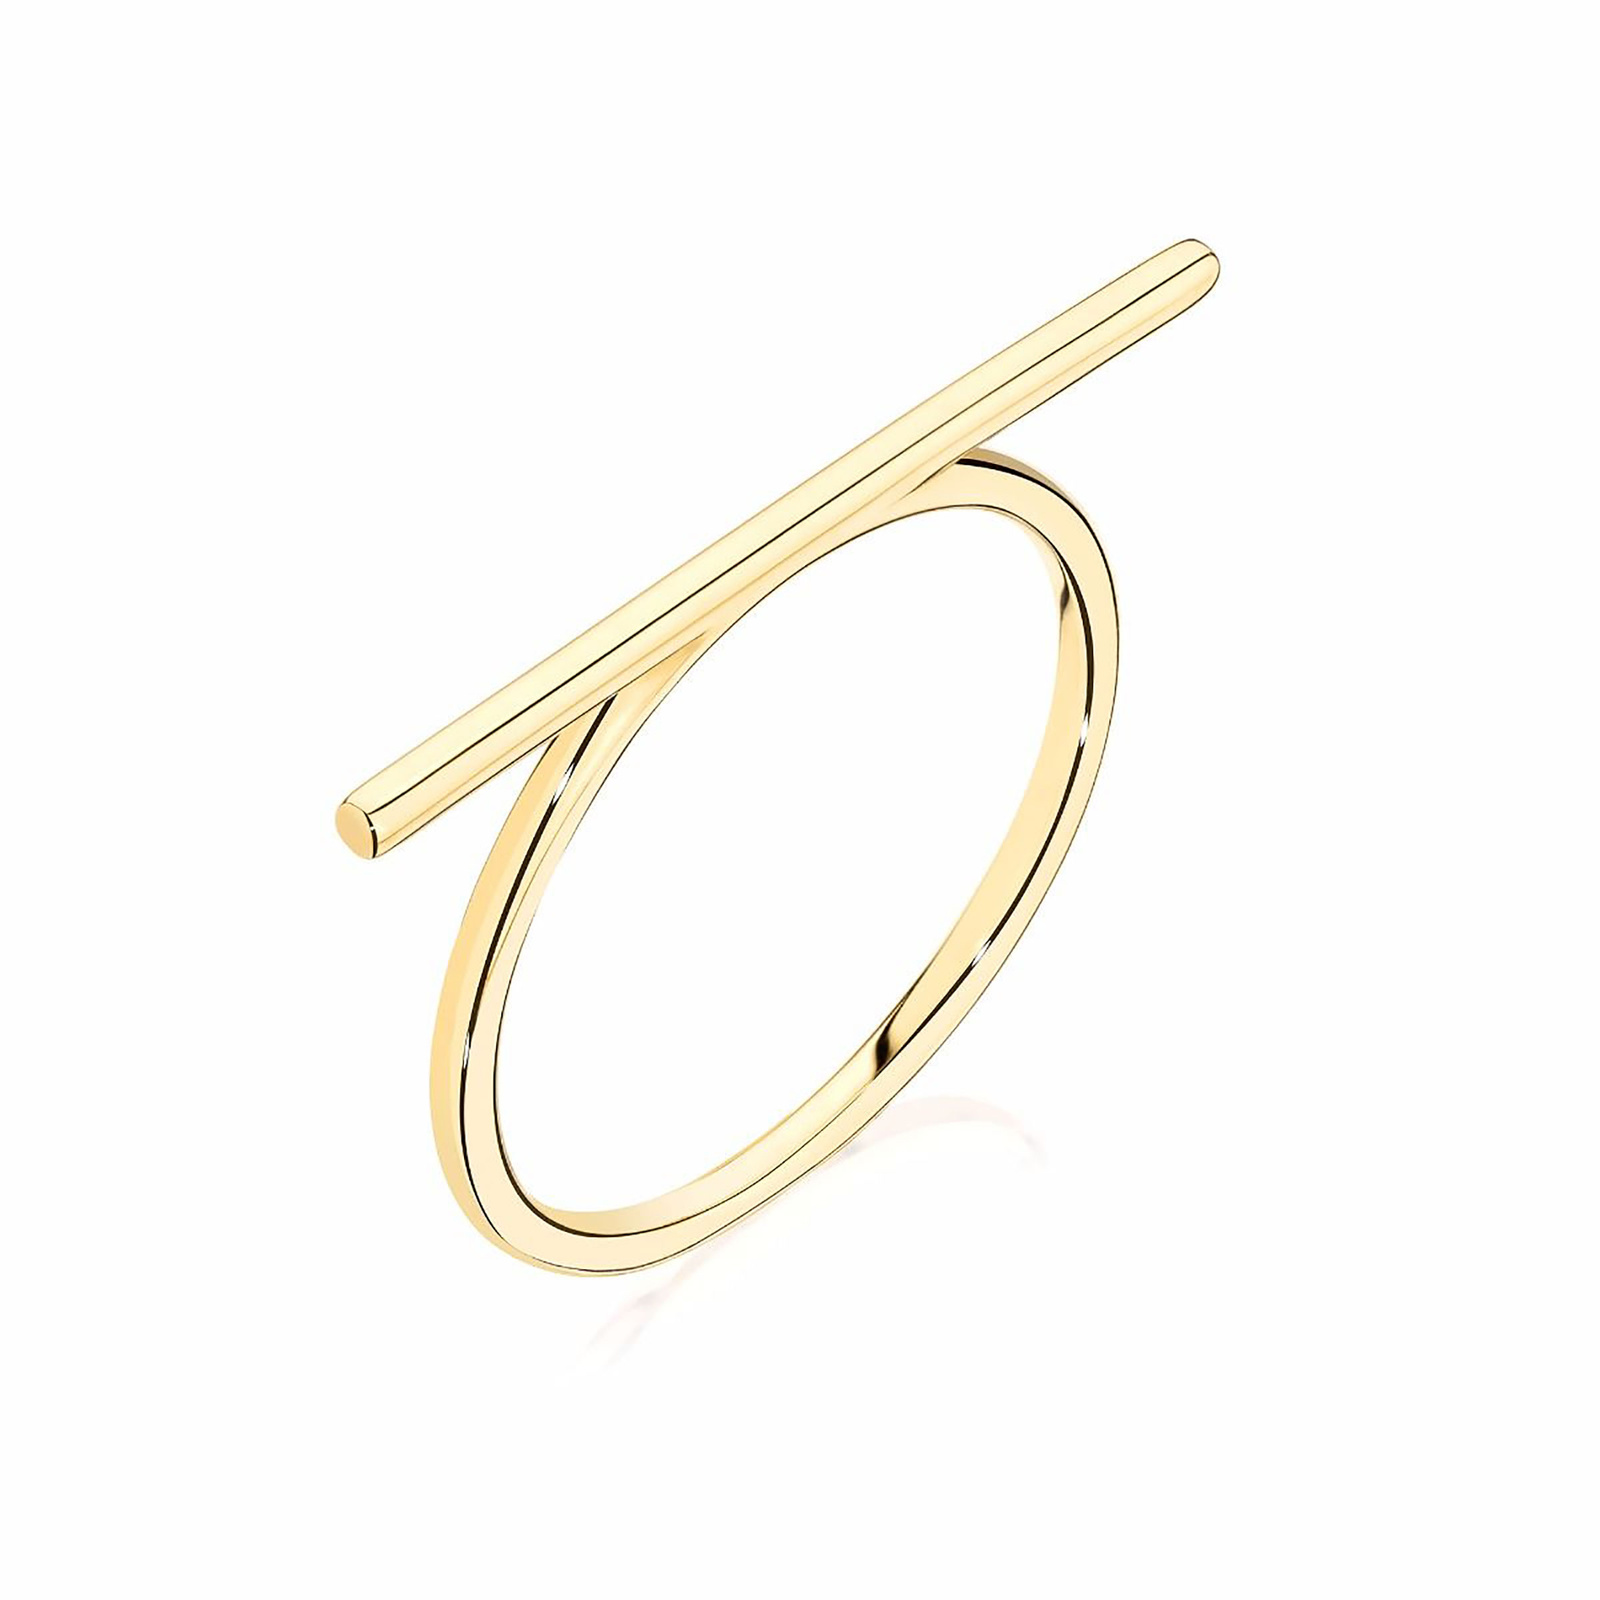 Birks Yellow Gold Bar Ring- Ring Size N